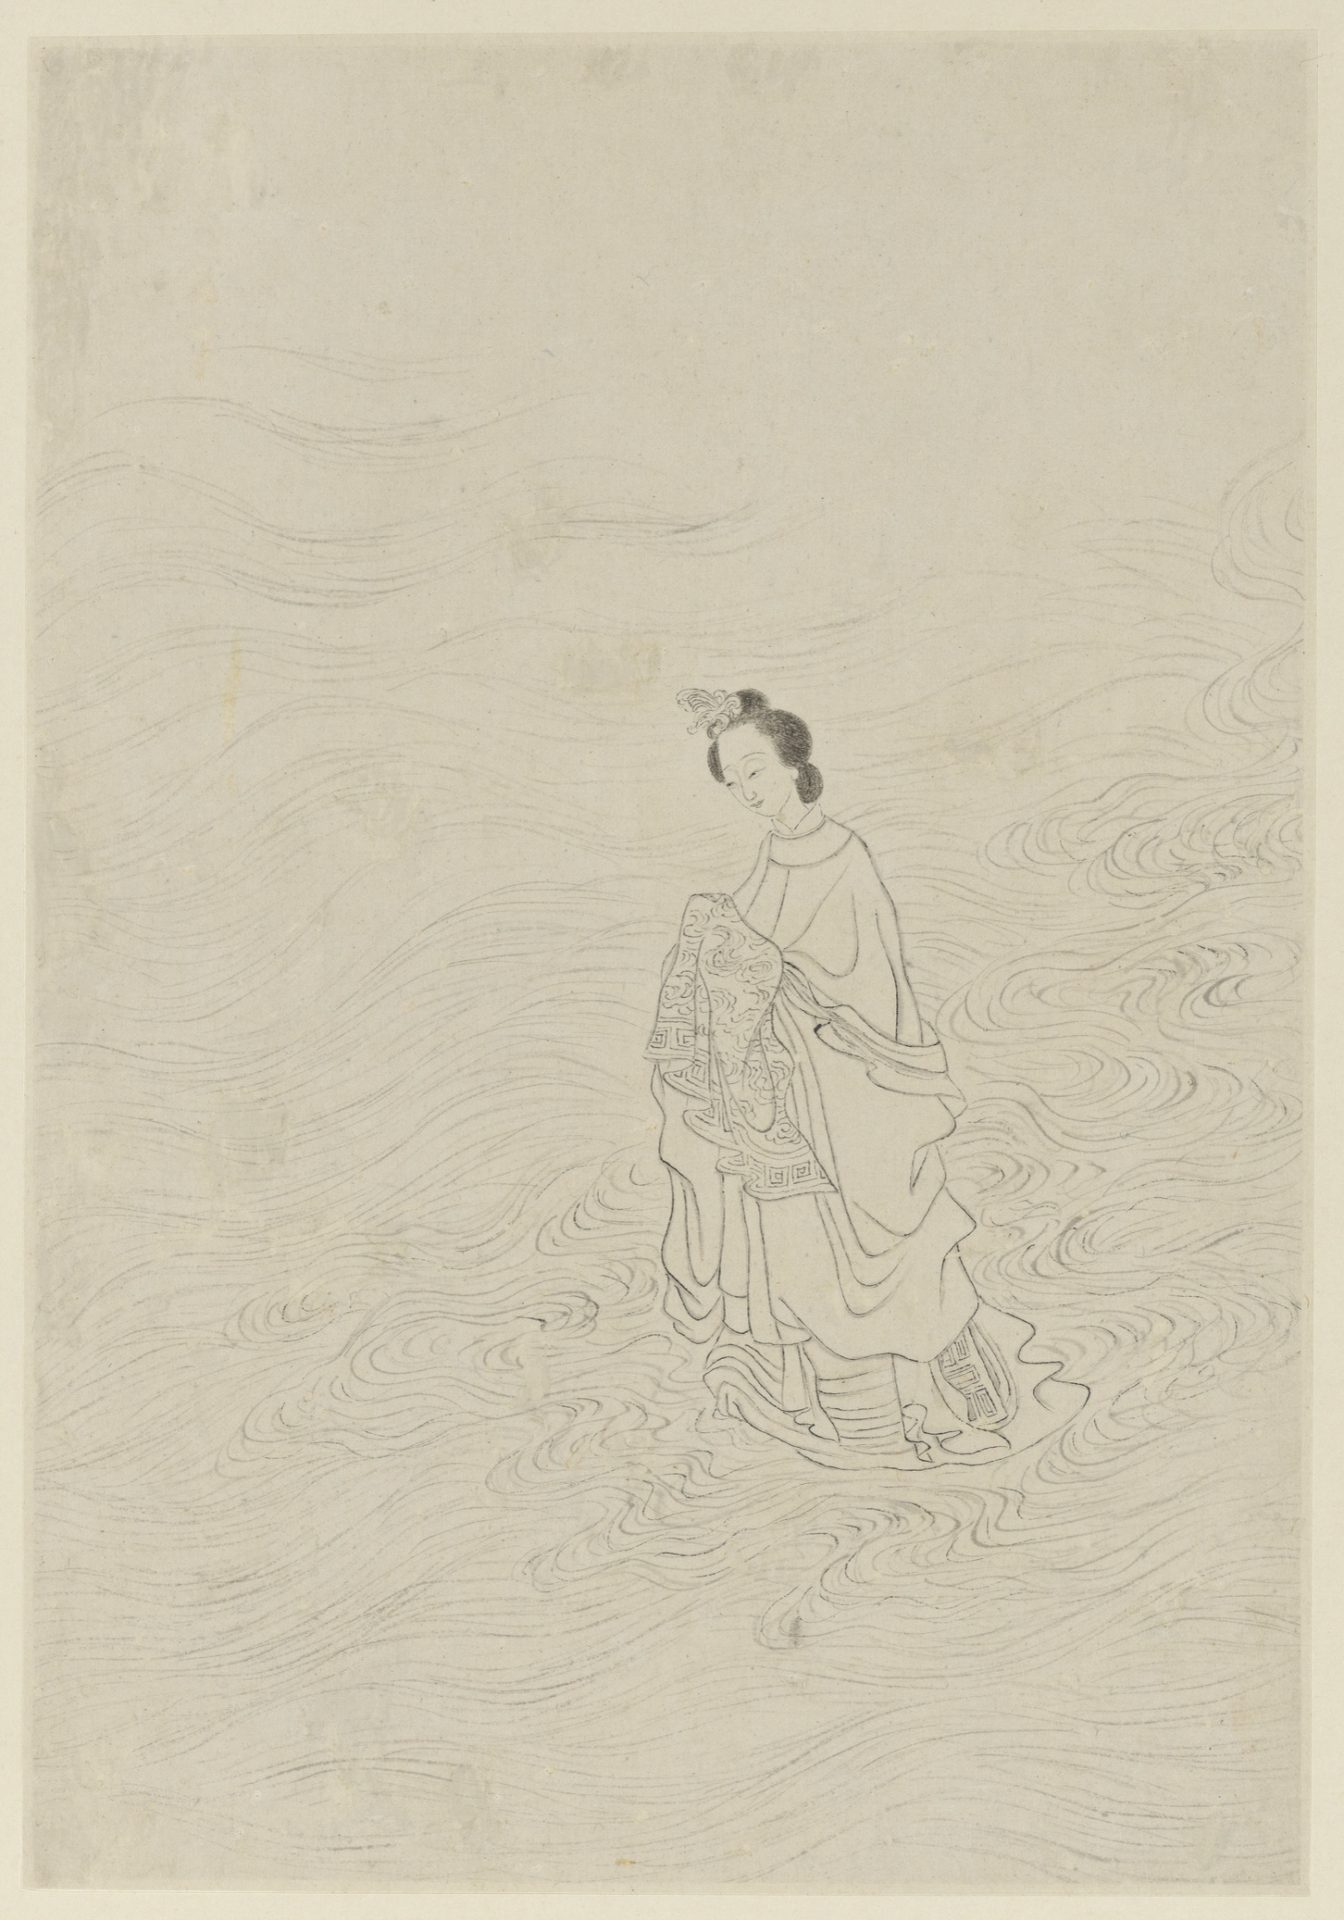 The Weave Maiden crossing the River of Heaven, as painted by Gai Qi, 1799. (Image: wikimedia / CC0 1.0)